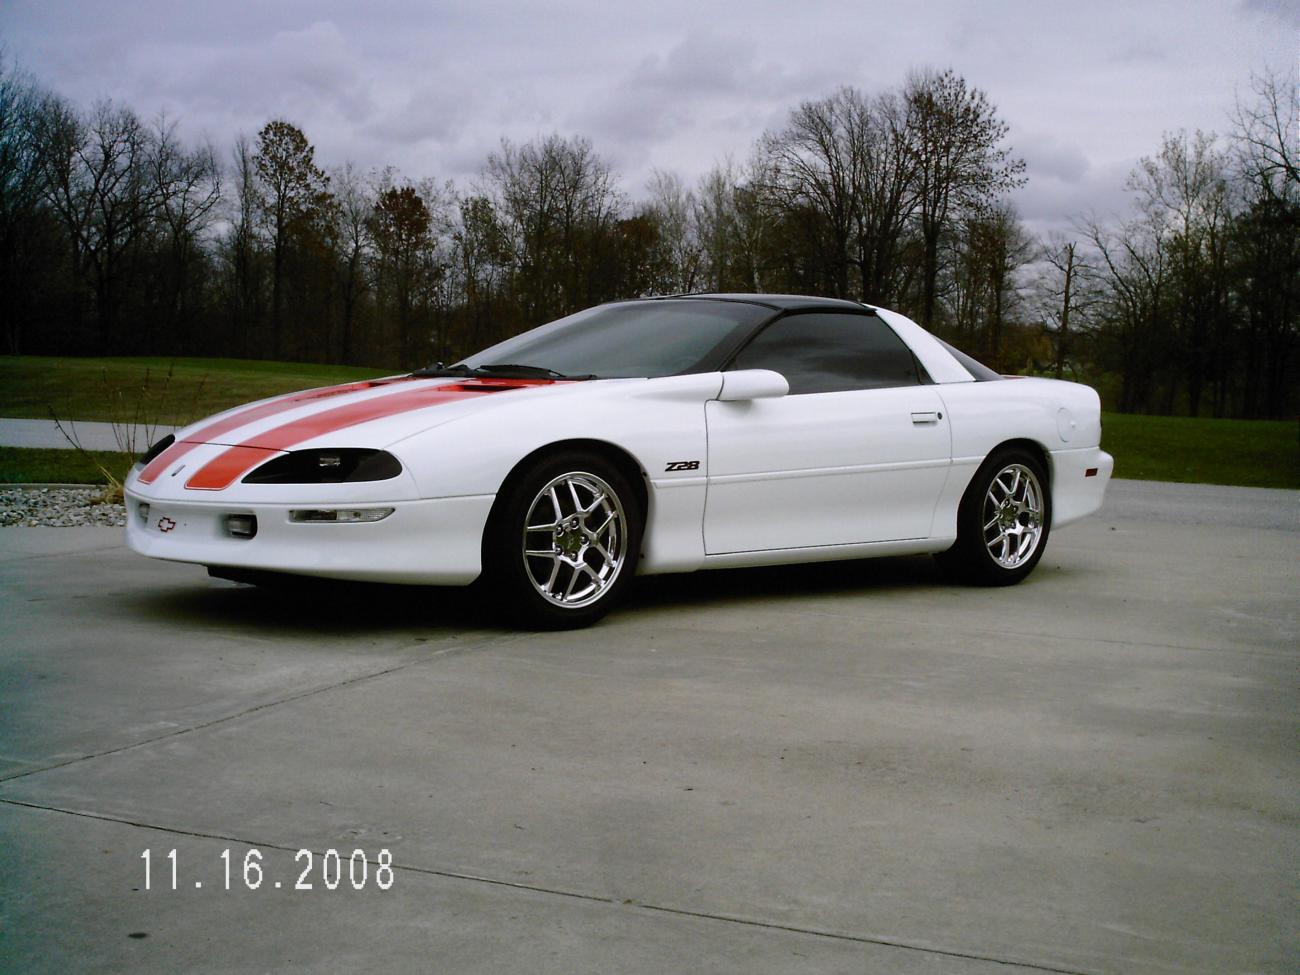 Classic Car Auction 6 1 2014 together with Gauges as well Pintores Gallegos Virxilio Blanco Garrido moreover KC1212 140483 in addition Watch. on 1997 z28 anniversary edition